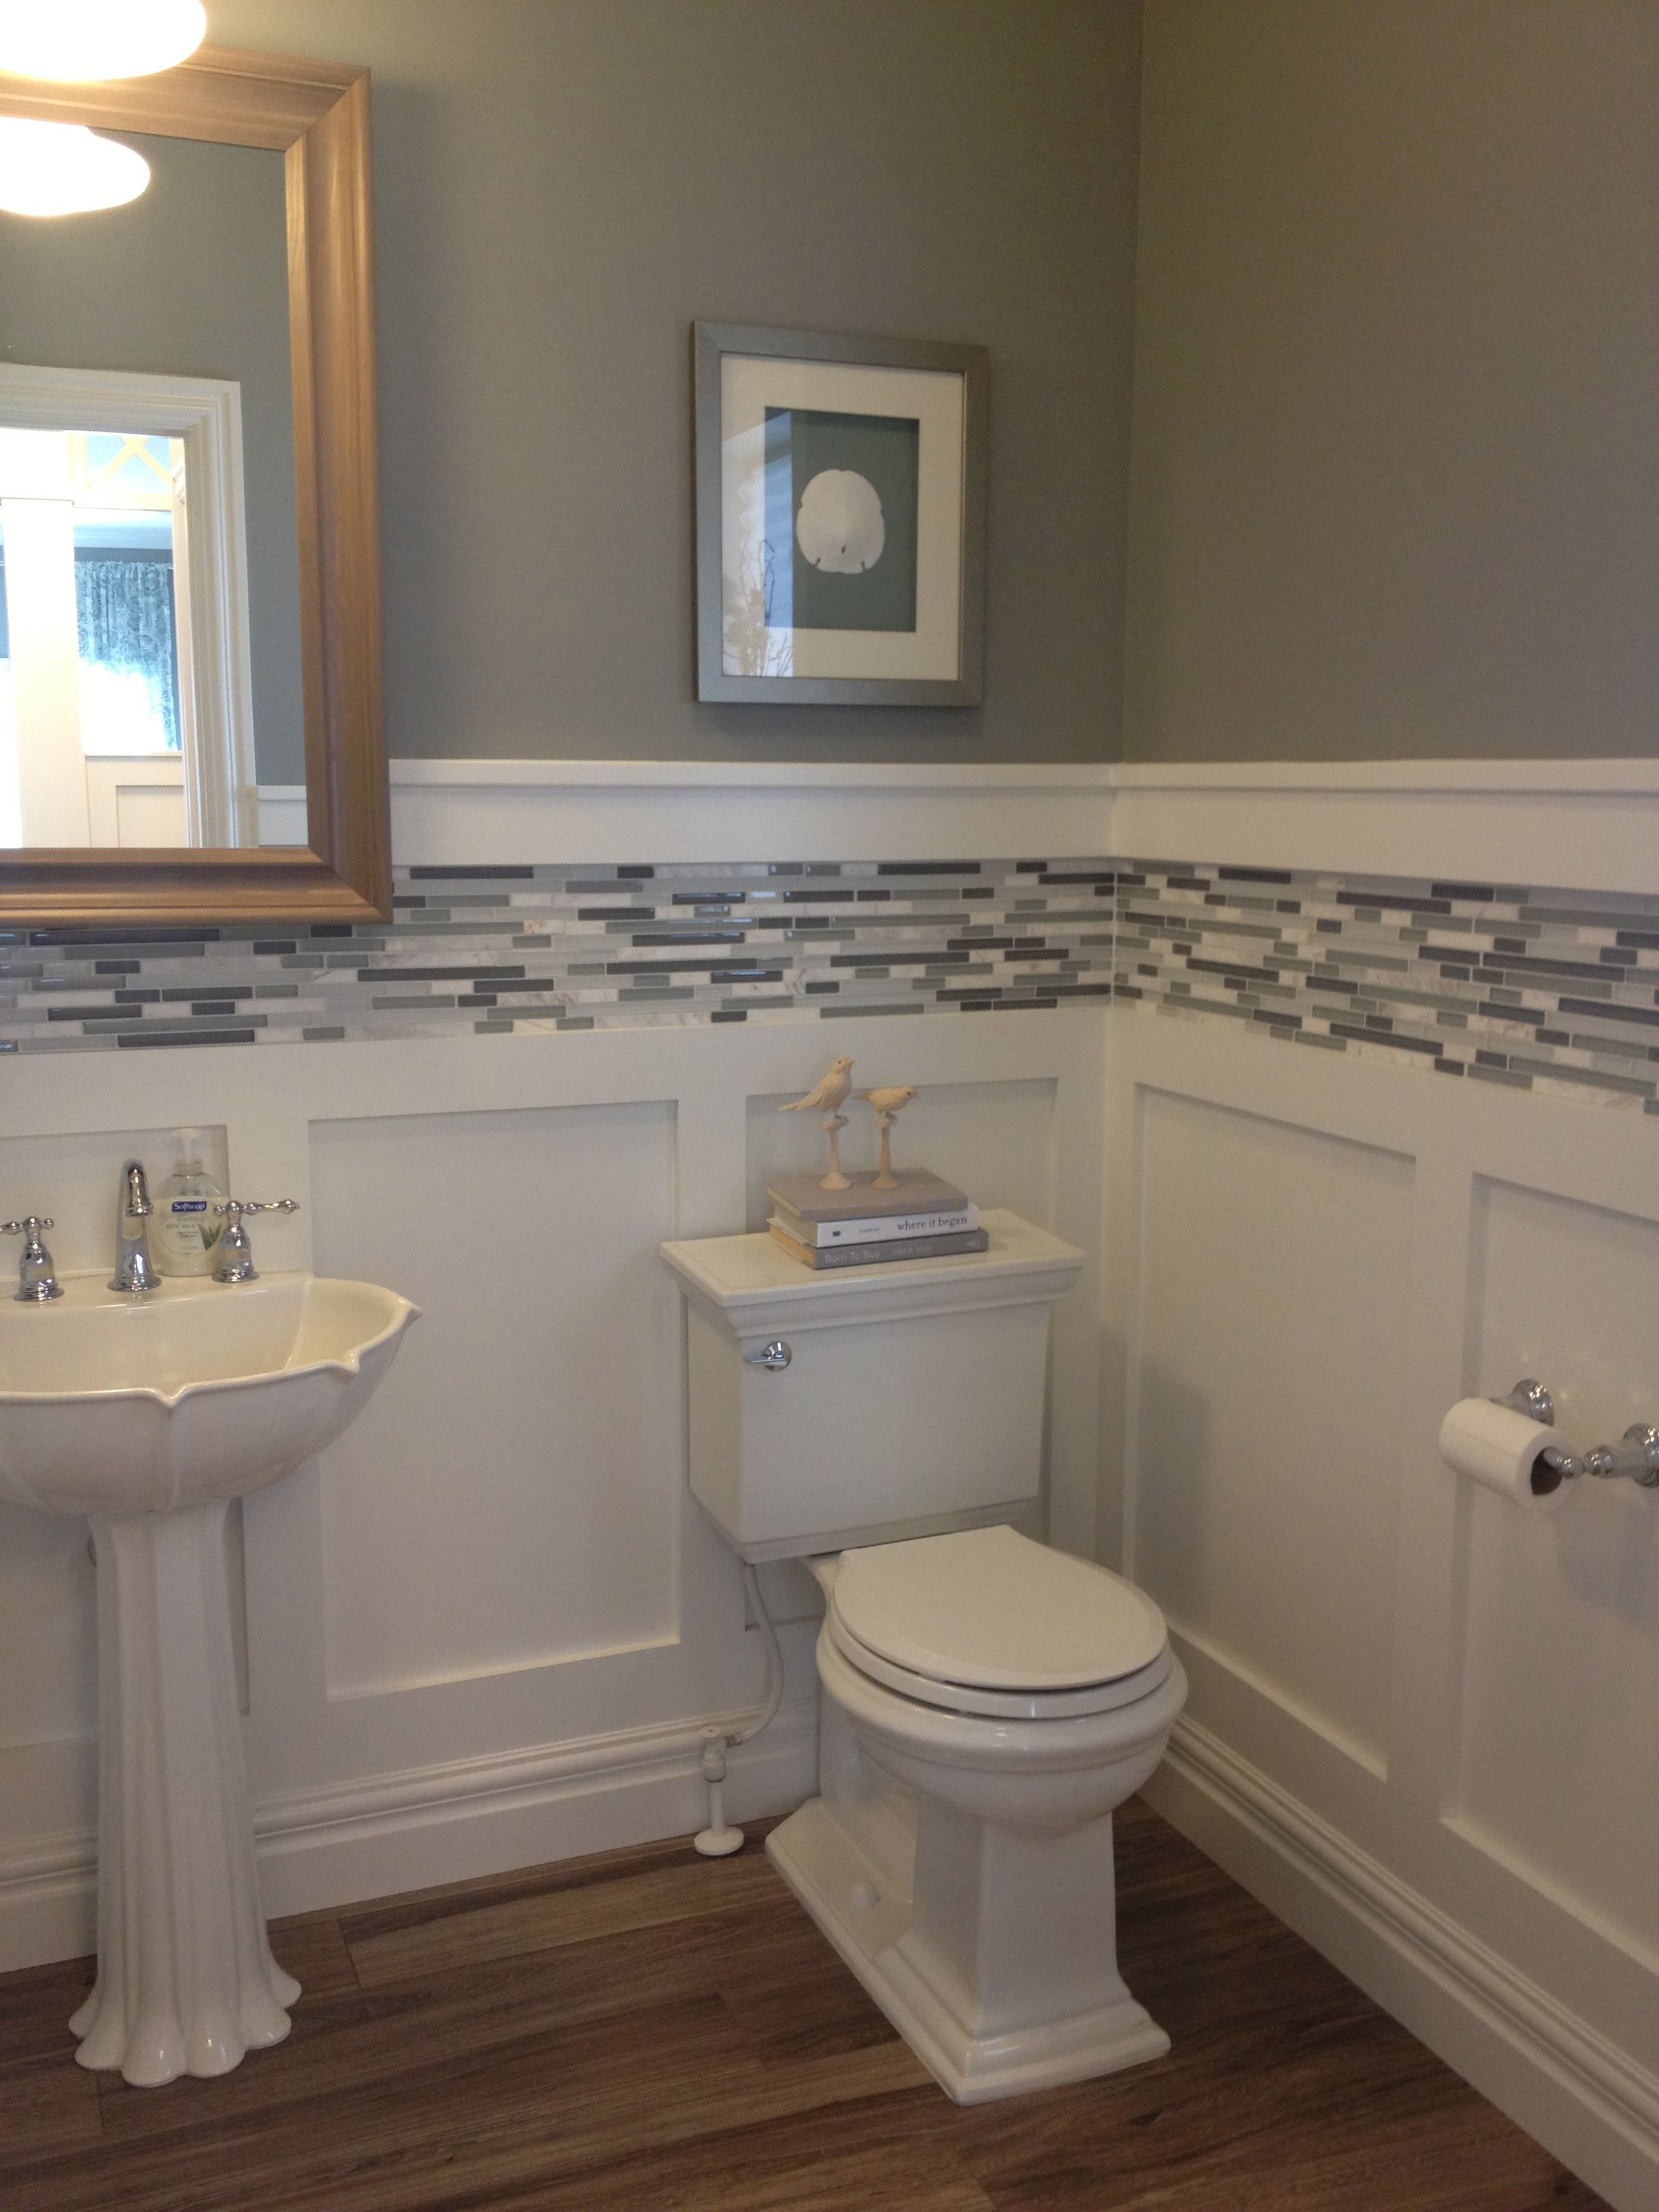 Bathroom choices bald hairstyles choices and wainscoting Bathroom designs wood paneling